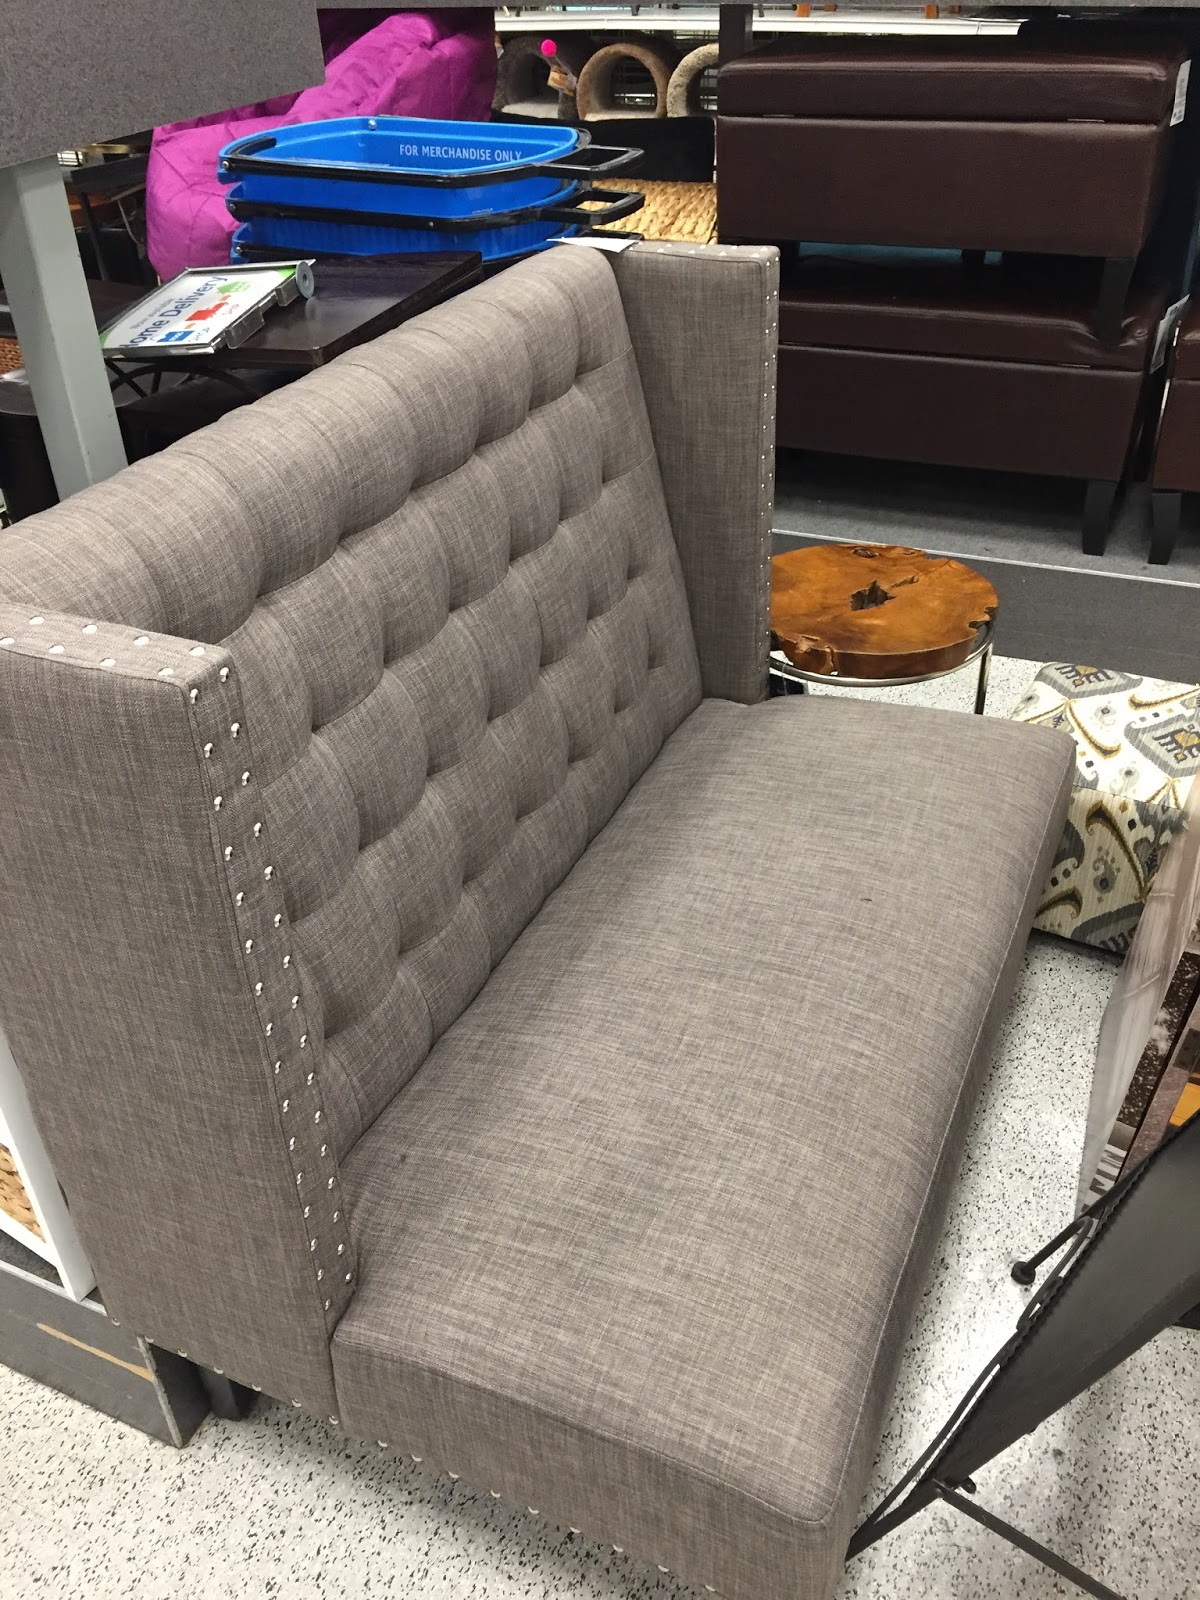 Inspire Bohemia Home Furniture And Decor At Ross Stores